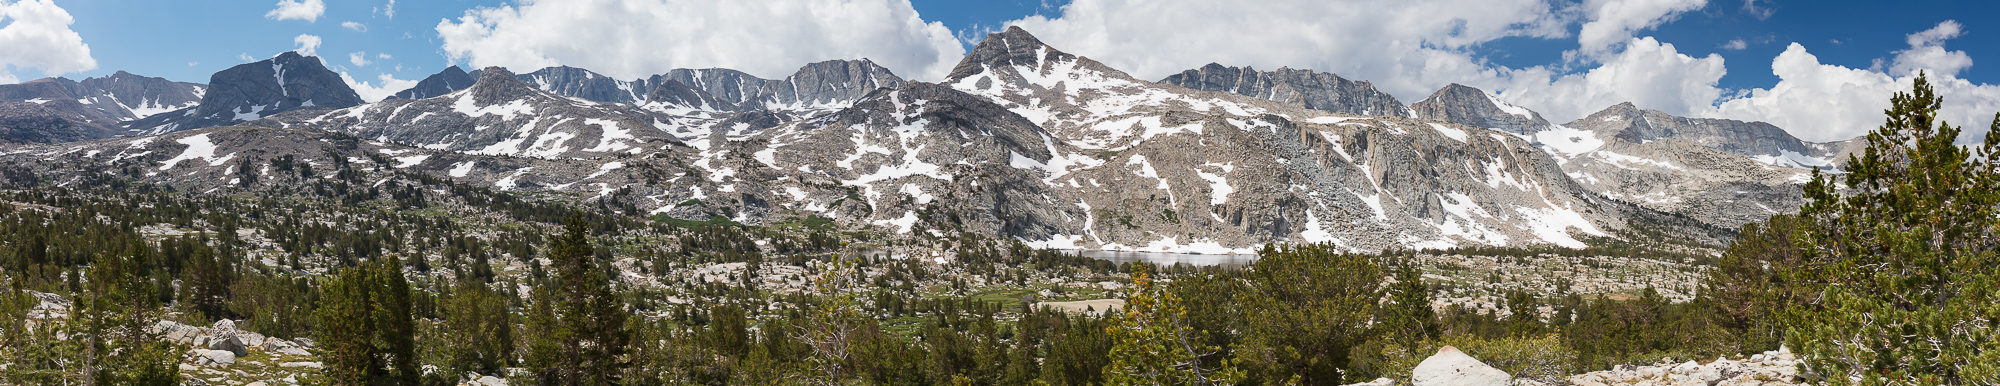 Mt Goethe and surrounding peaks provide a panoramic view just over Piute Pass, Inyo National Forest, CA.